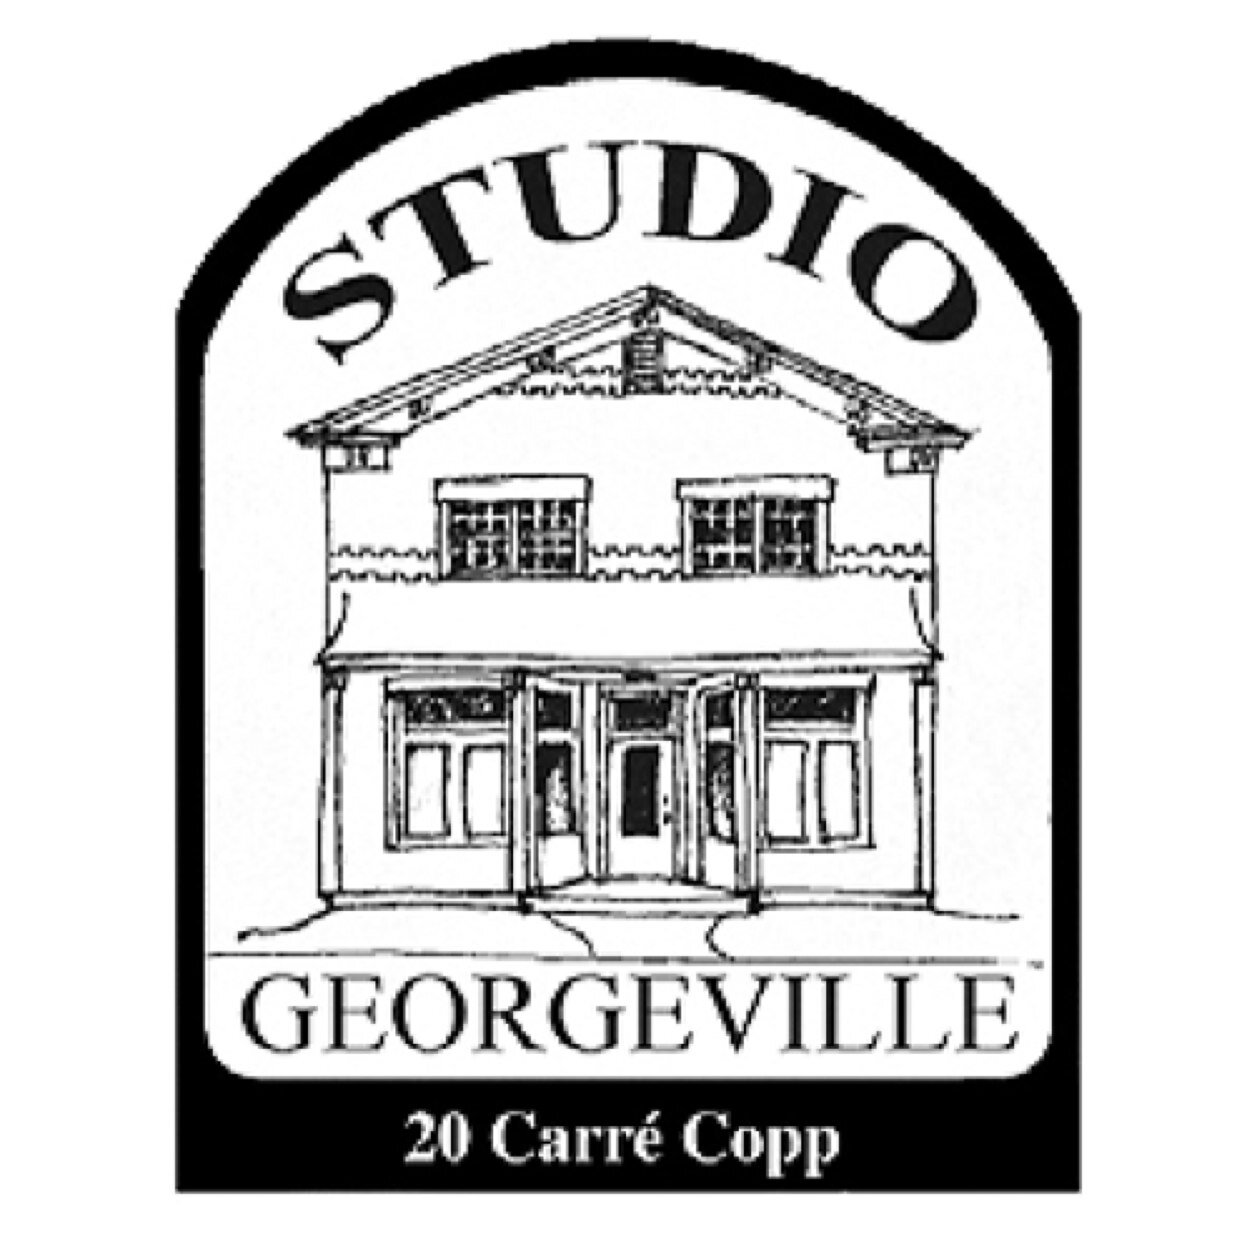 Studio Georgeville,